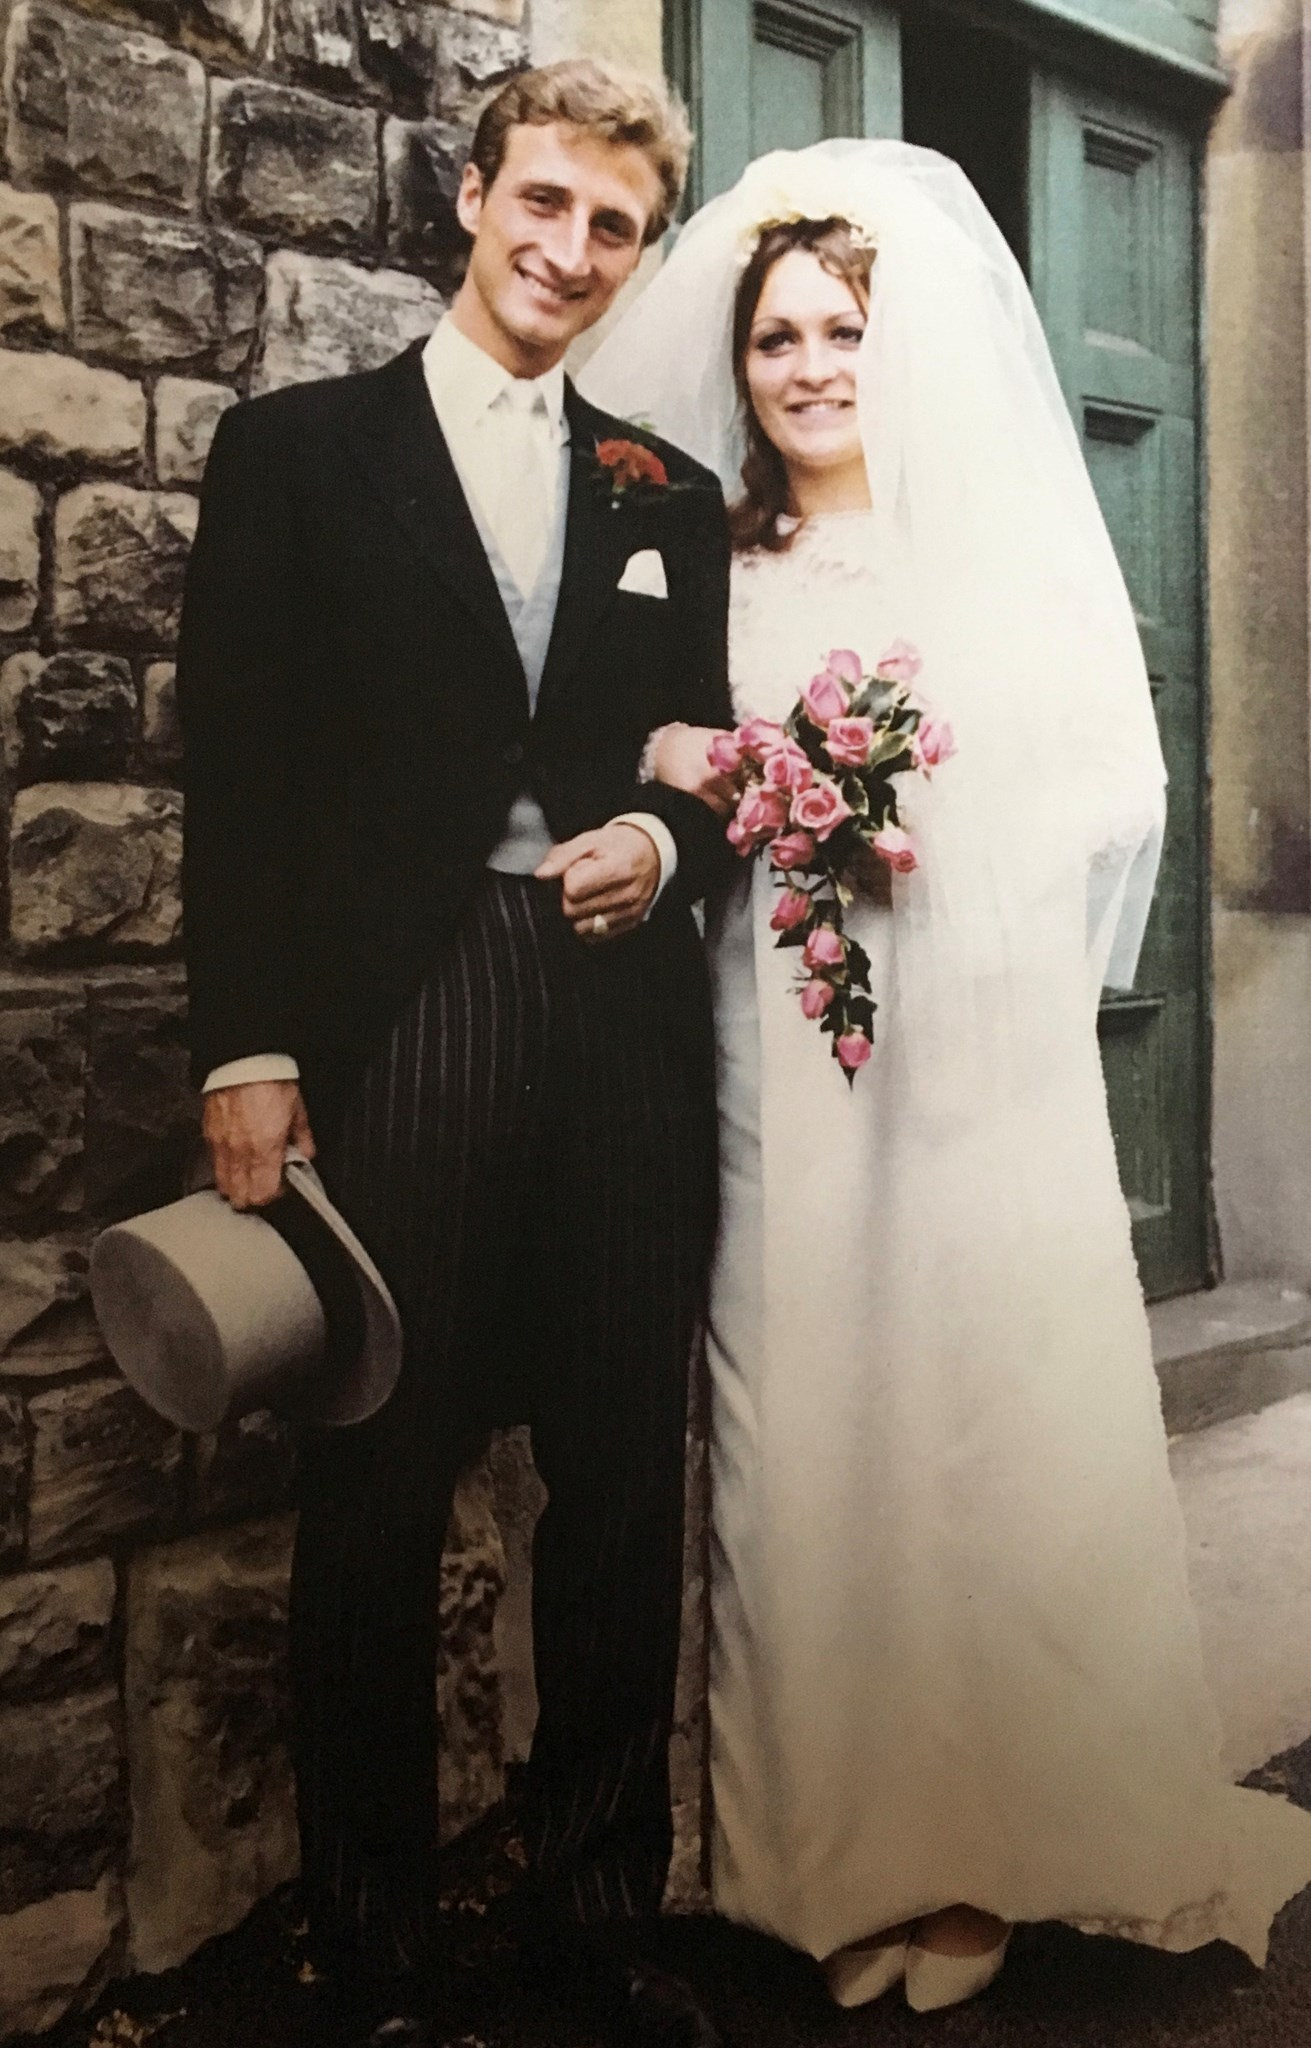 Gordon and Mary on their wedding day-23rd August 1969